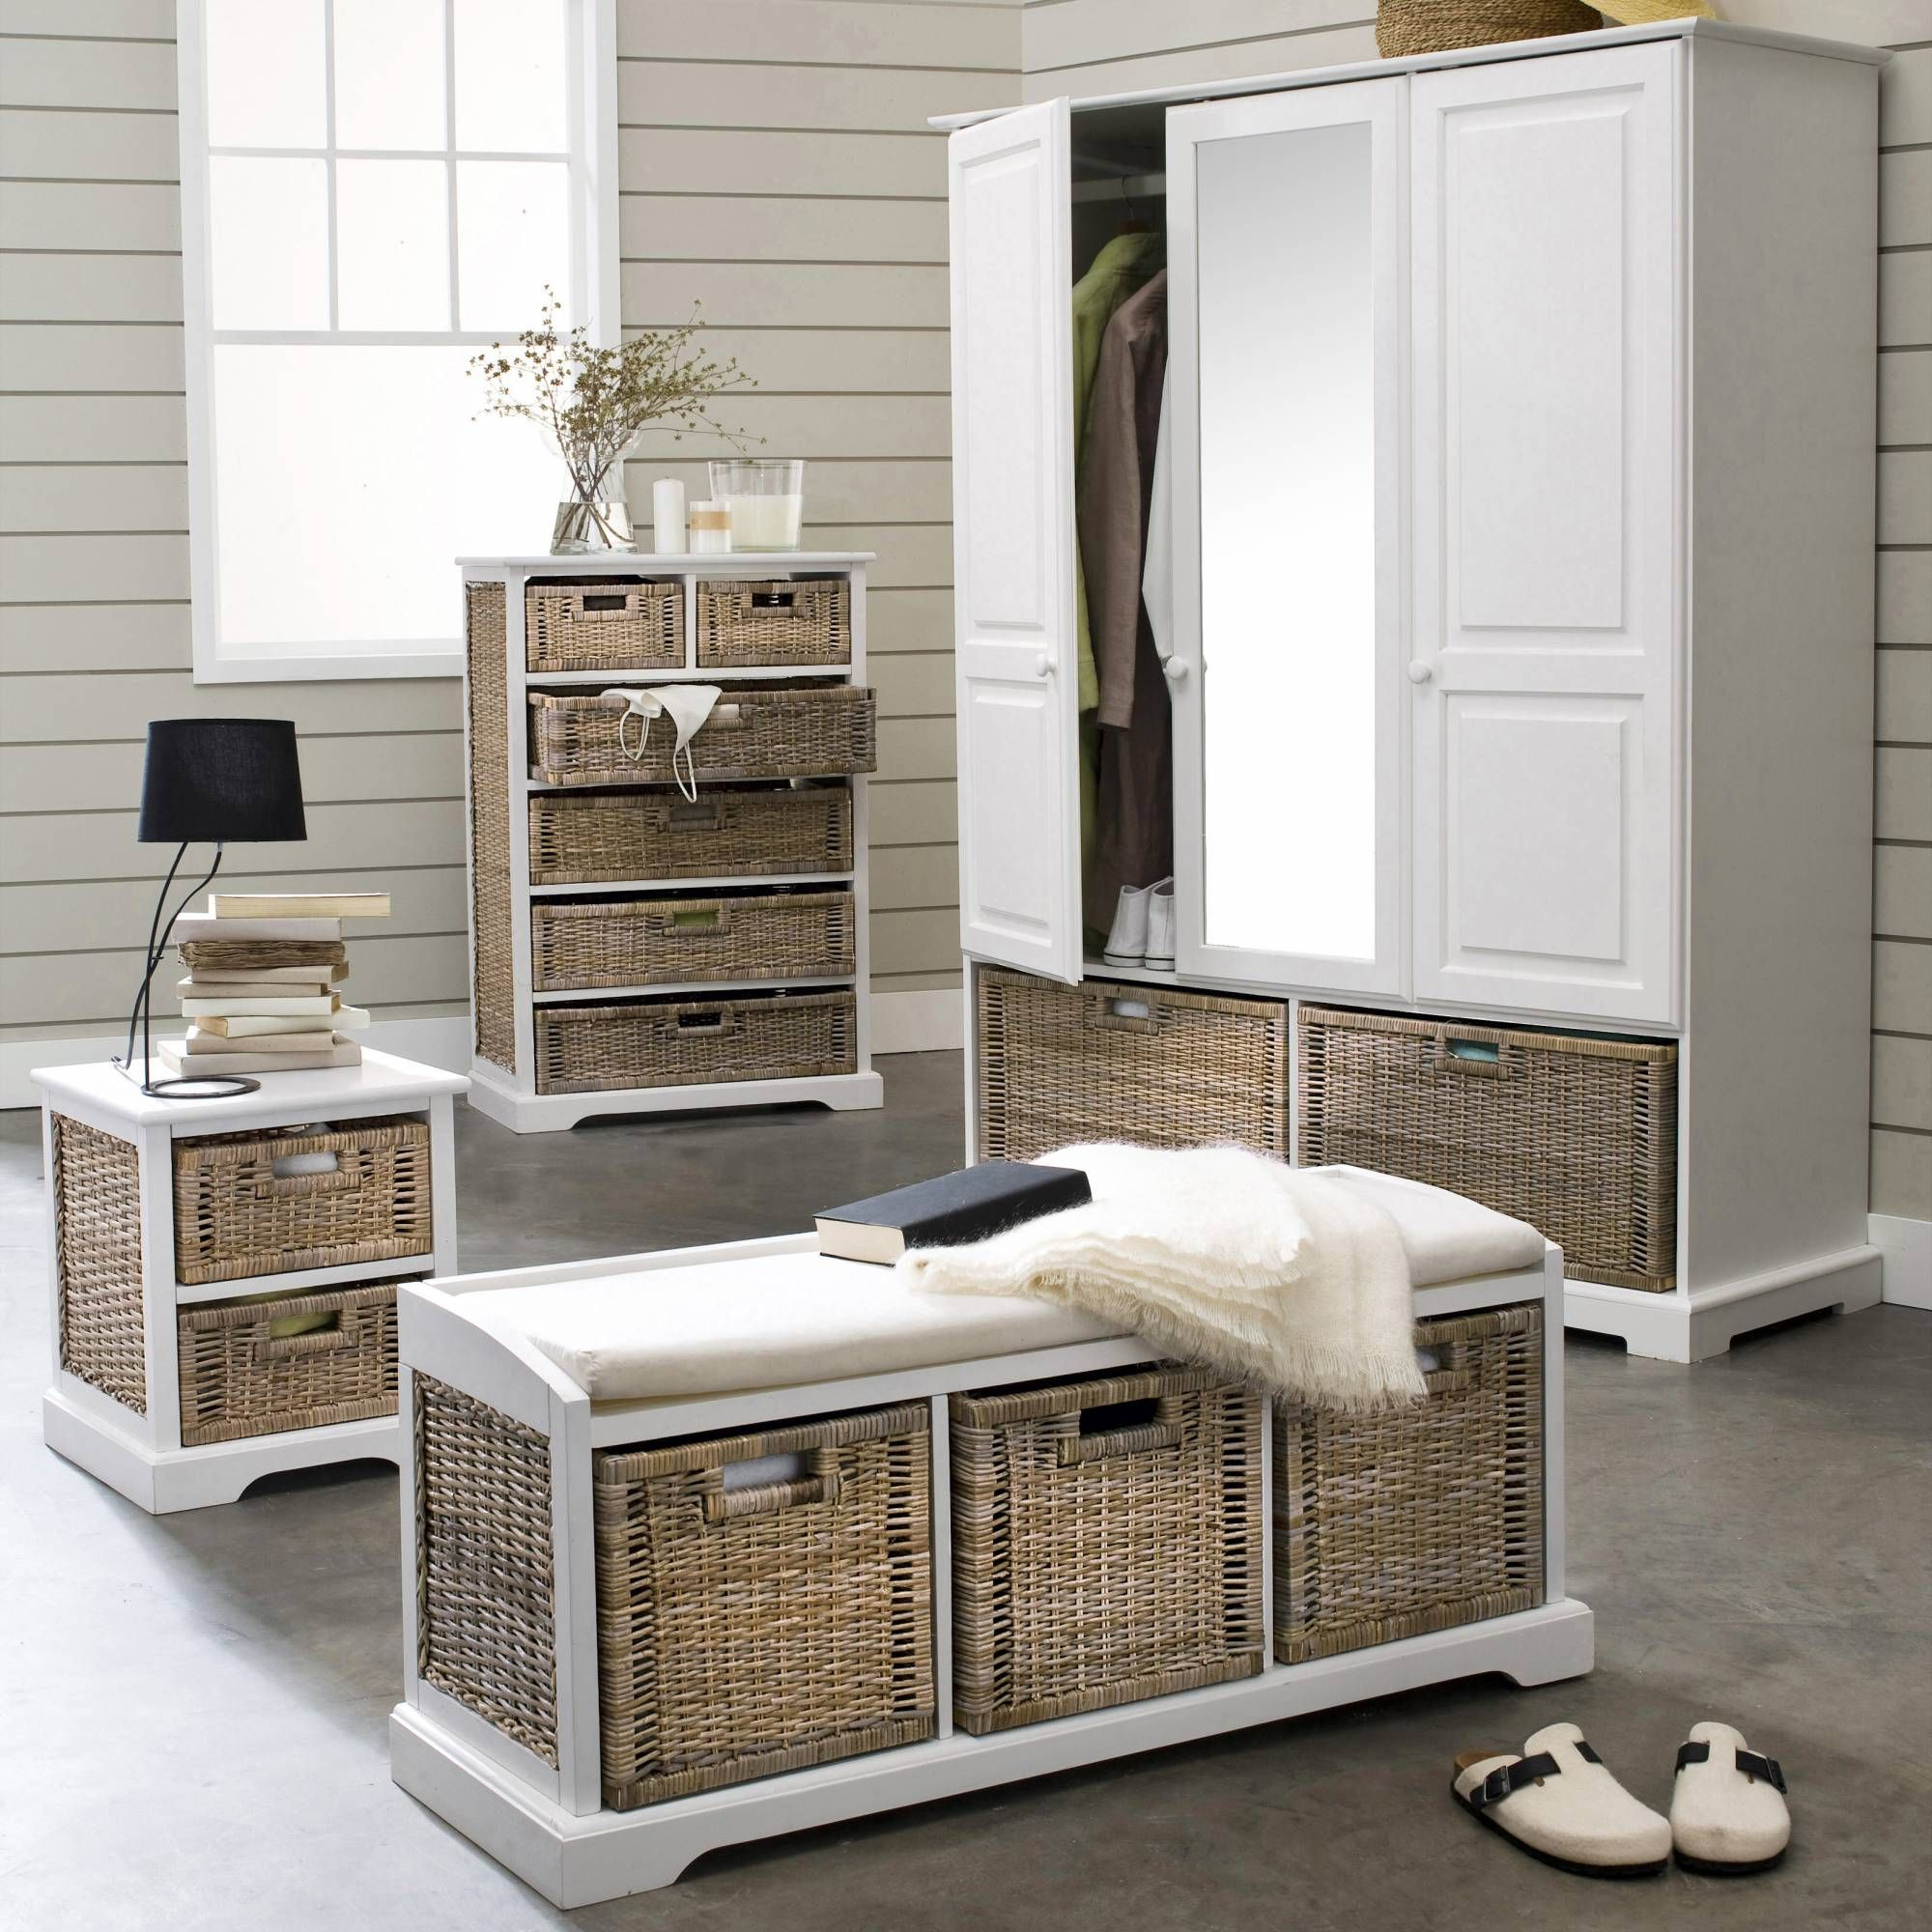 banc de rangement 3 tiroirs en pin massif et kubu kil 3 suisses petits espaces pinterest. Black Bedroom Furniture Sets. Home Design Ideas